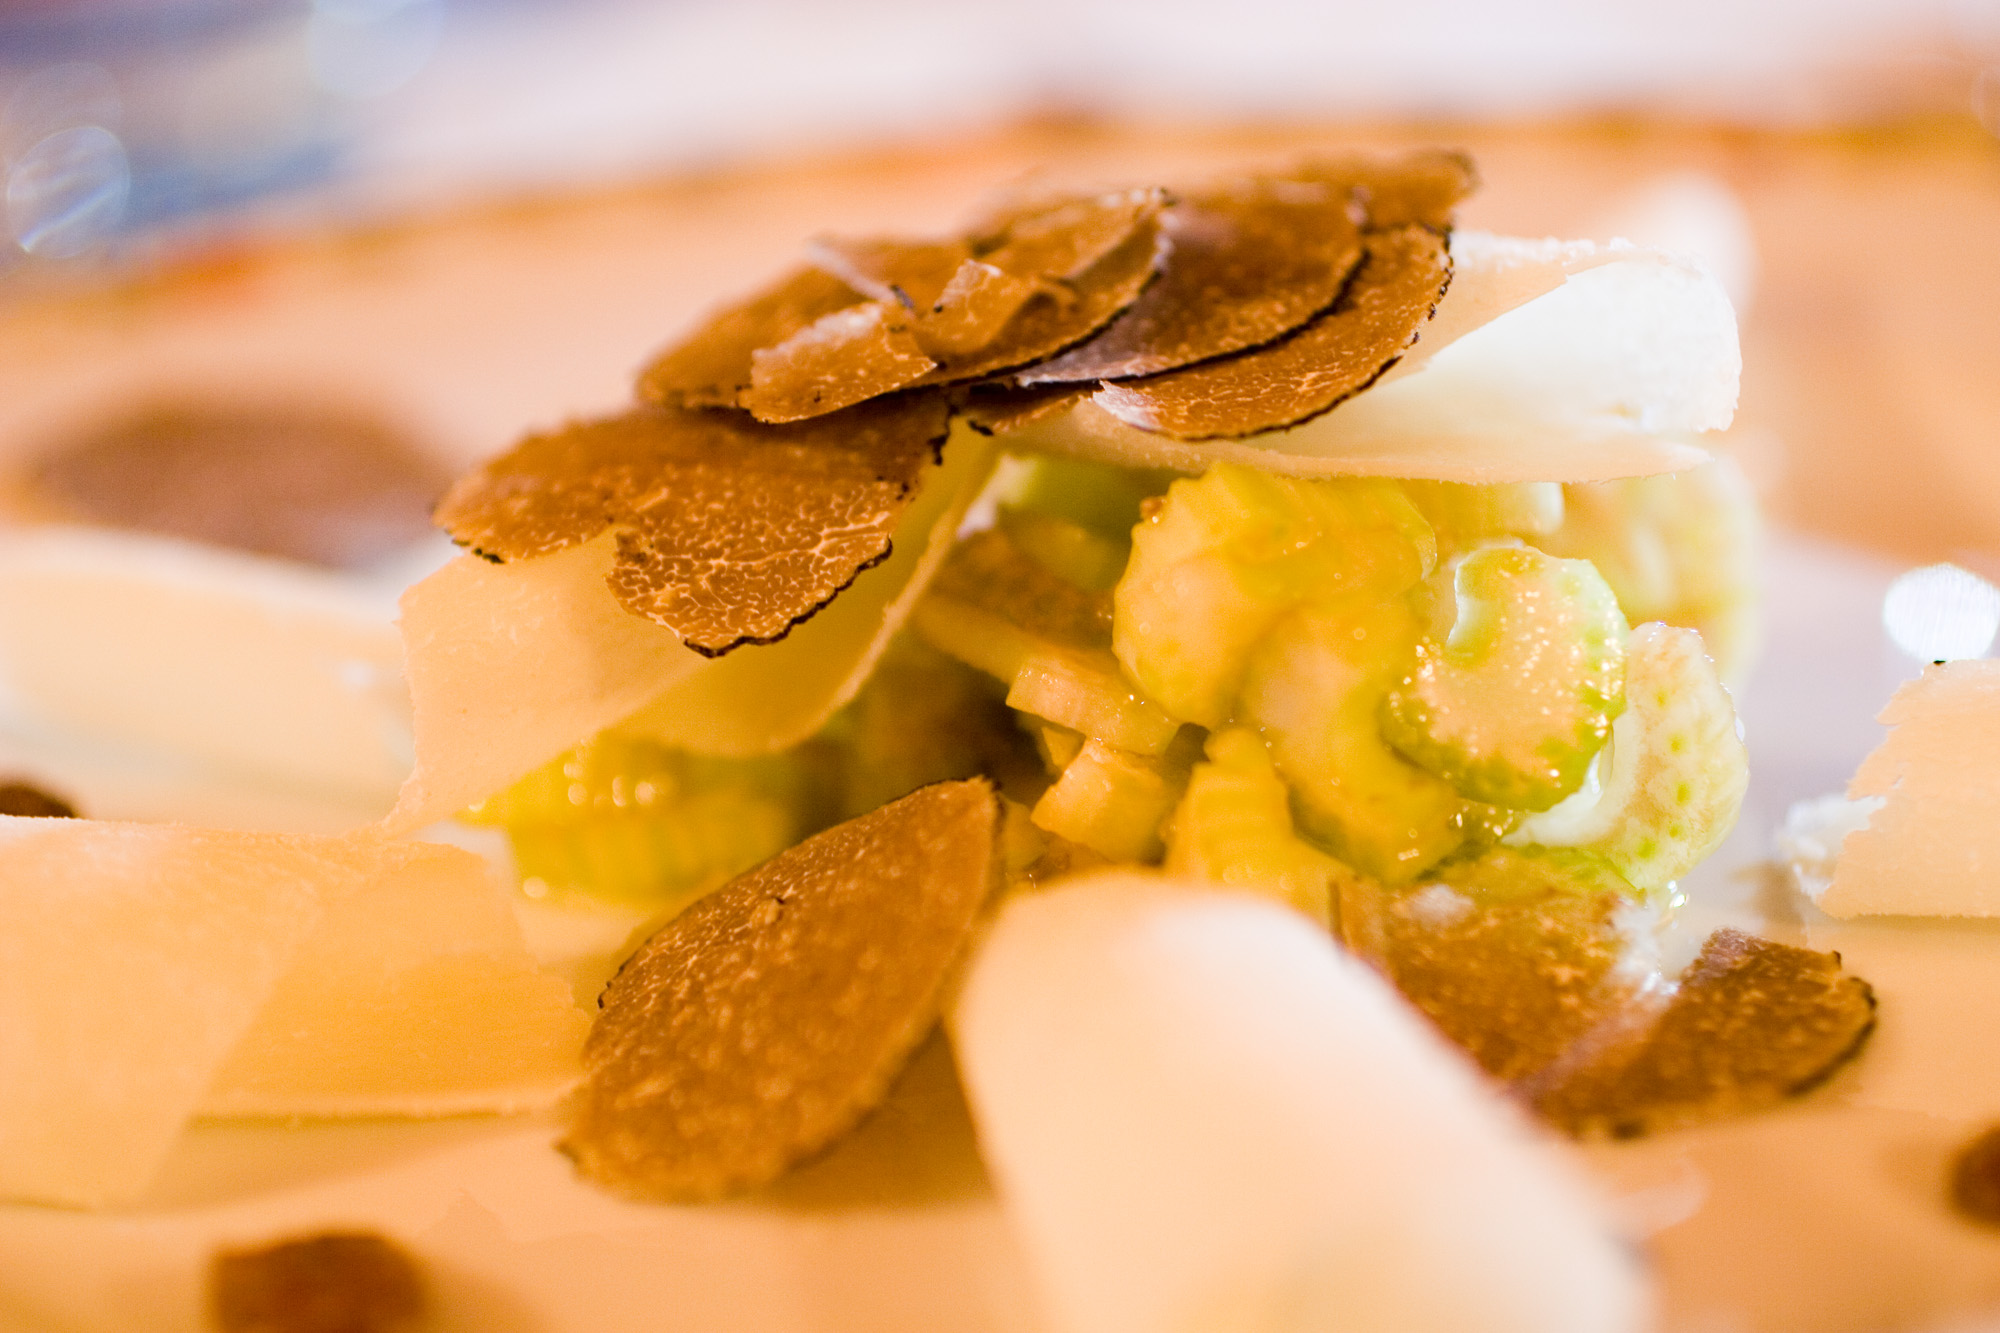 Black trufle with celery and Parmesan cheese at Tra Arte and Querce, Monchiero Alto, Piemonte, Italy